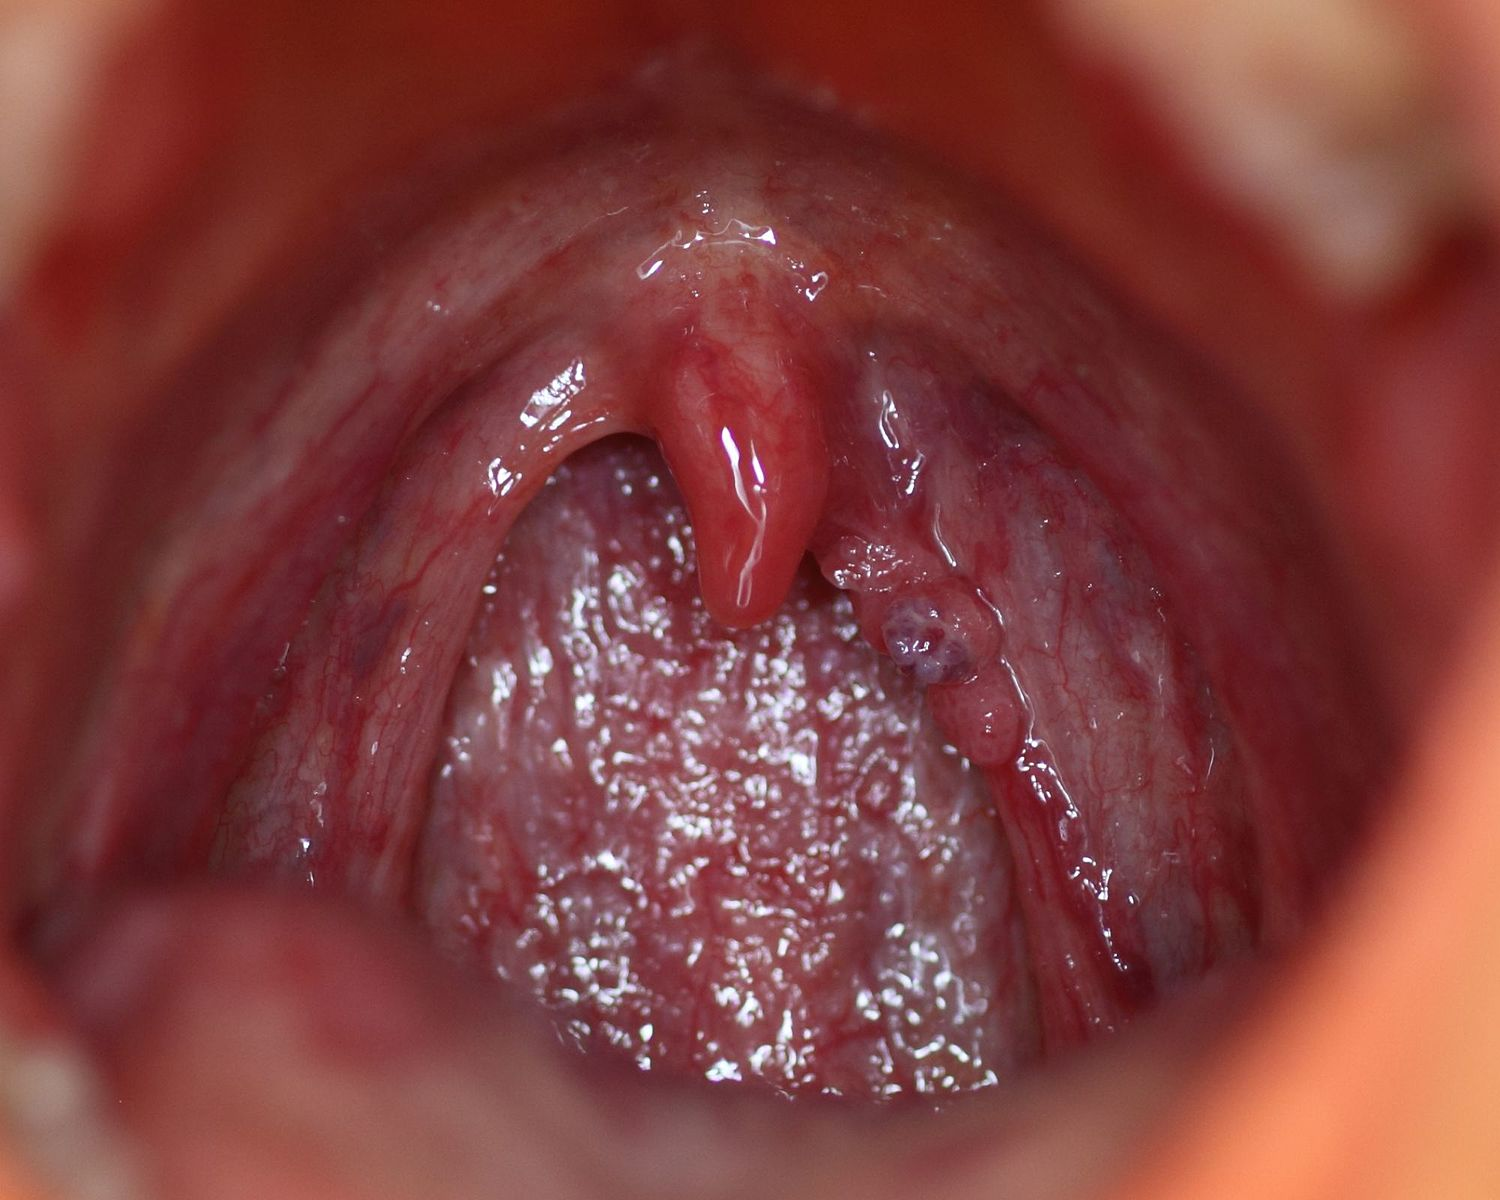 oxiuros tratamiento chile how does hpv cause cancer of the cervix